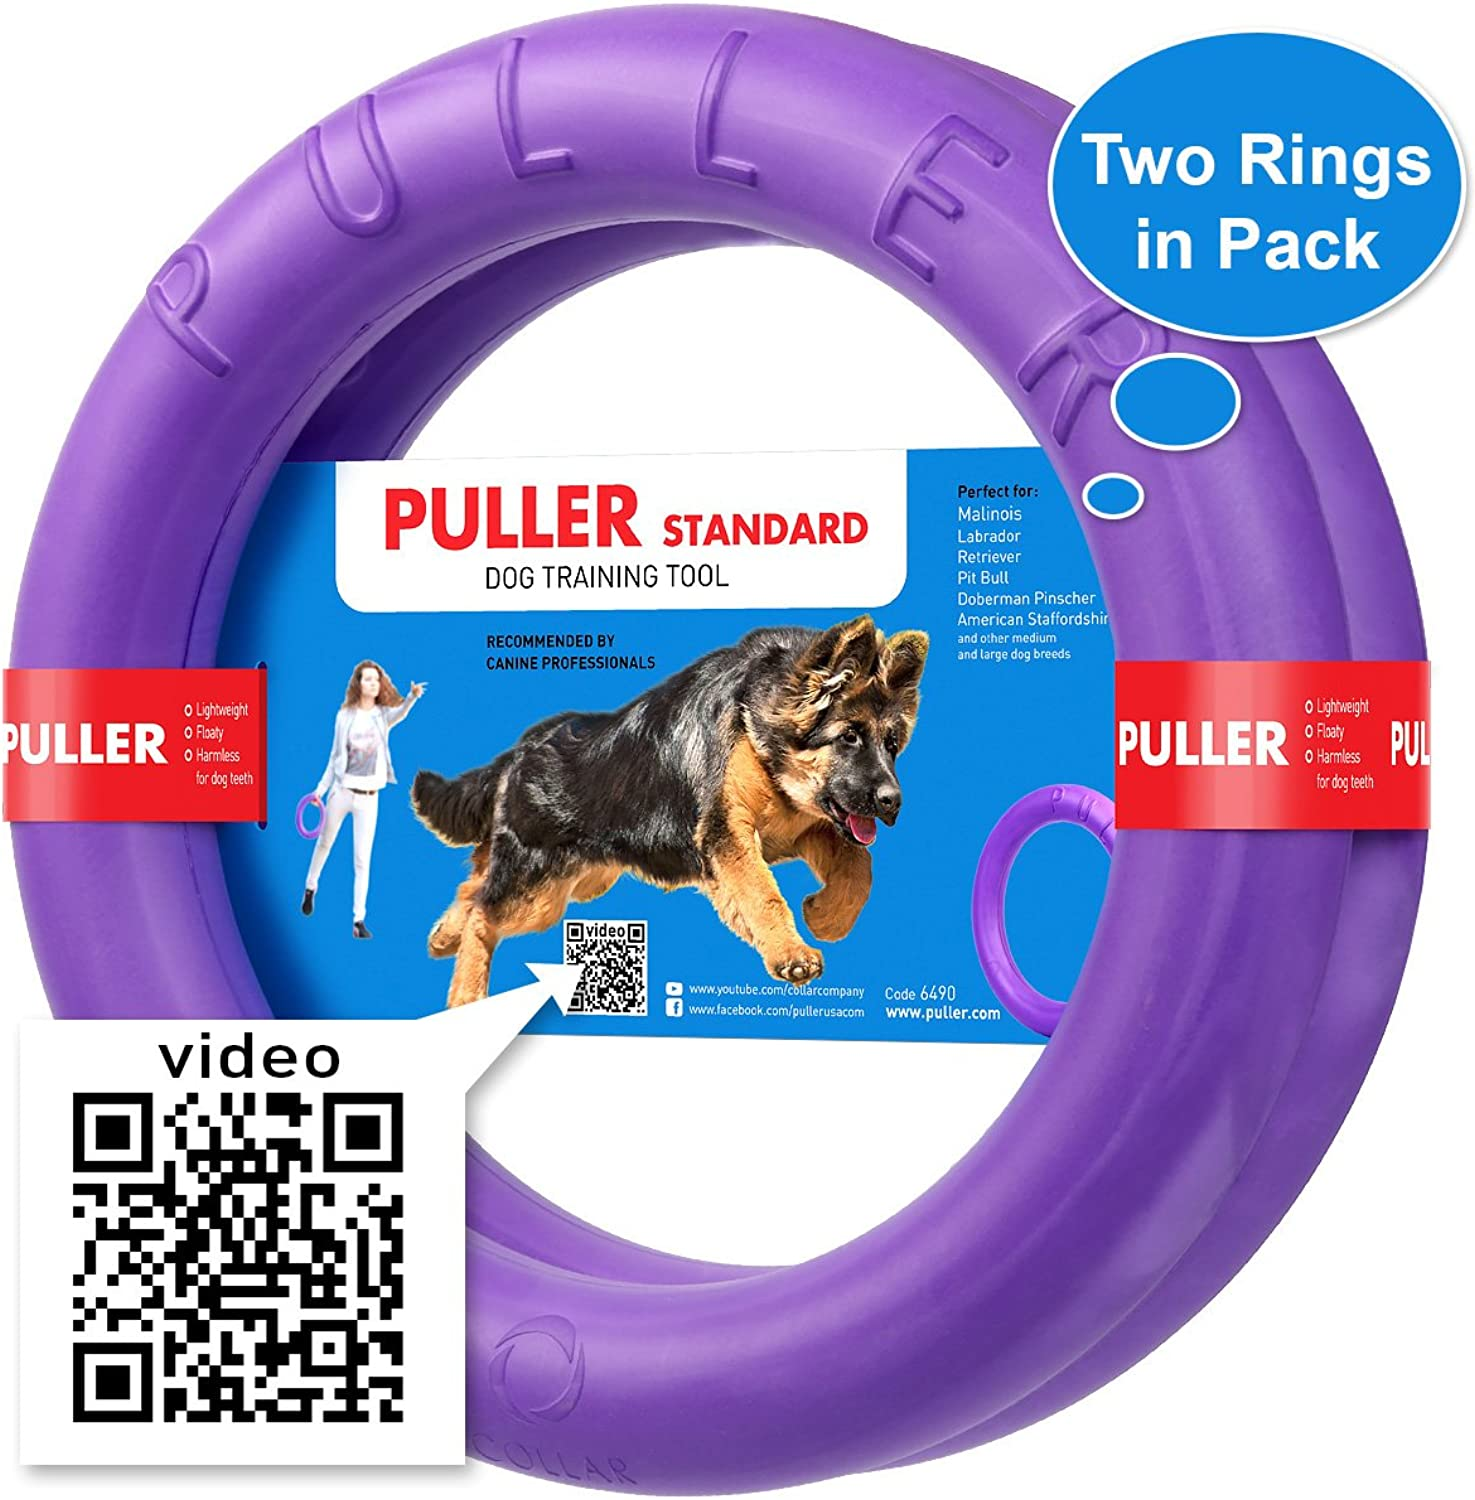 COLLARCOMPANY New Version 2018 Dog Training Equipment and Bonus  Large Medium K9 Dog Training tool  Dog Supplies  Real physical and emotional load your dog  Set 2 Rings by Puller Plus  Size 11.2 inches